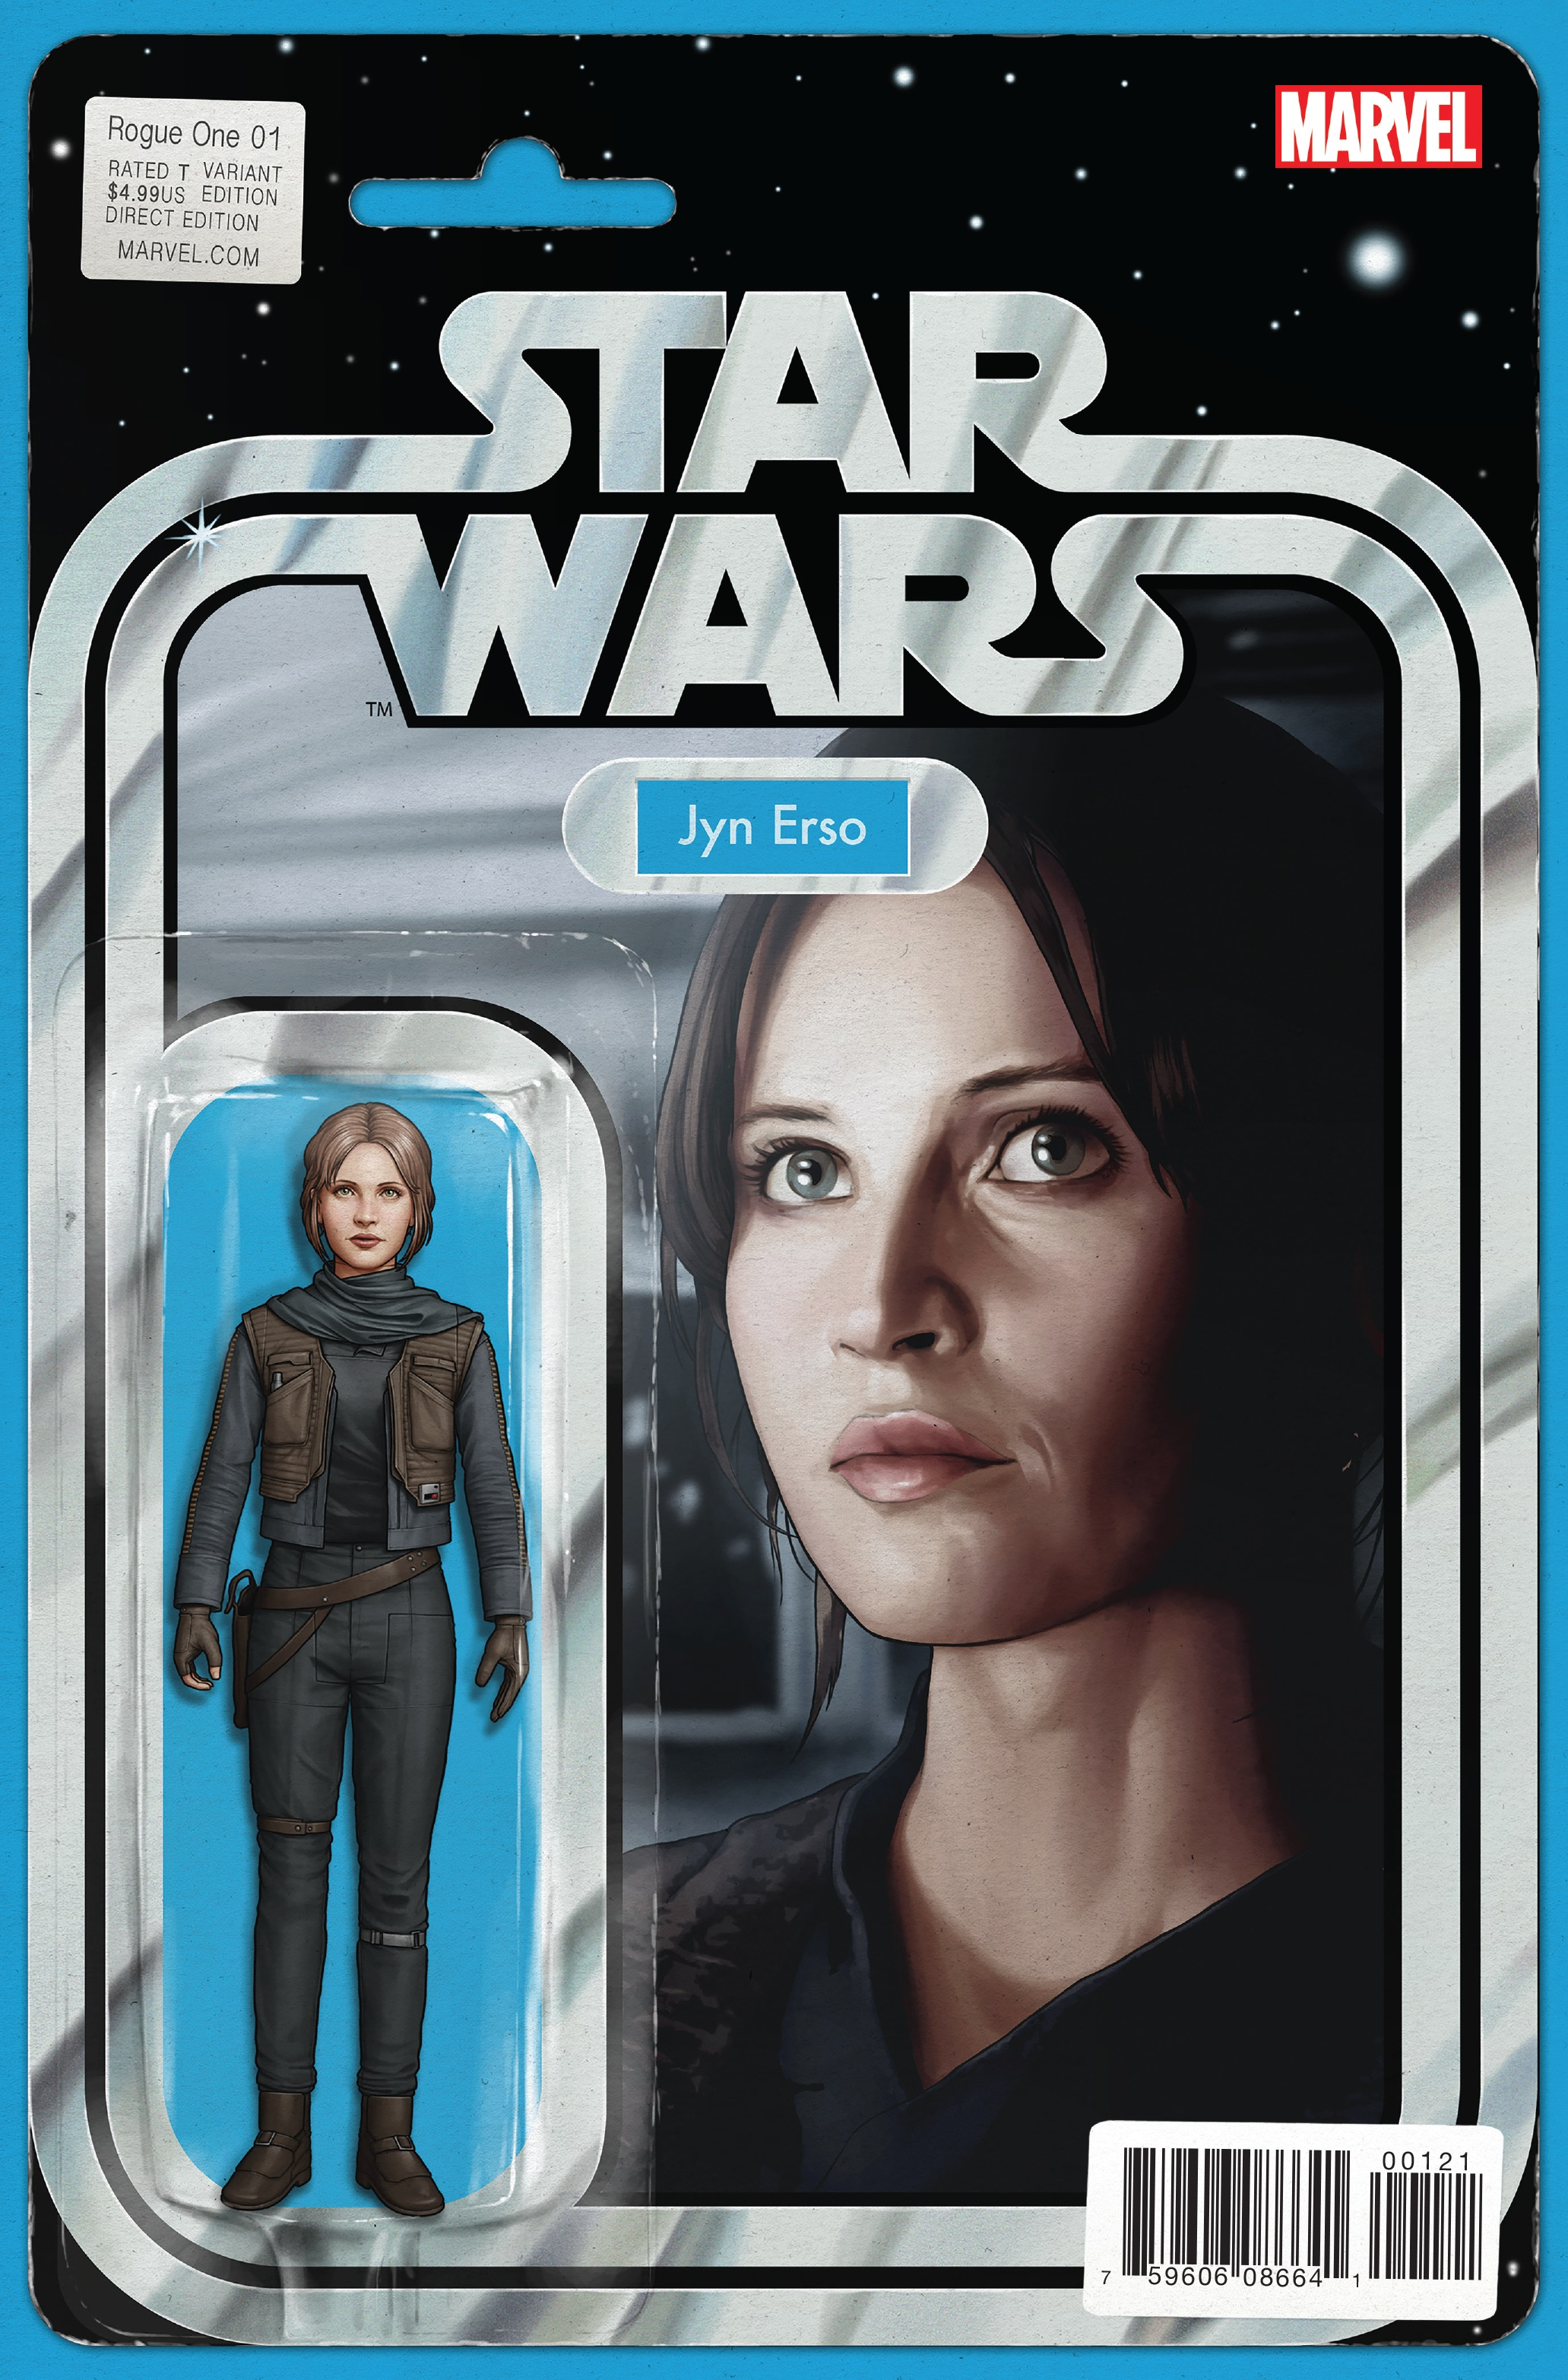 Rogue One #1 (Action Figure Variant Cover) (April 2017)